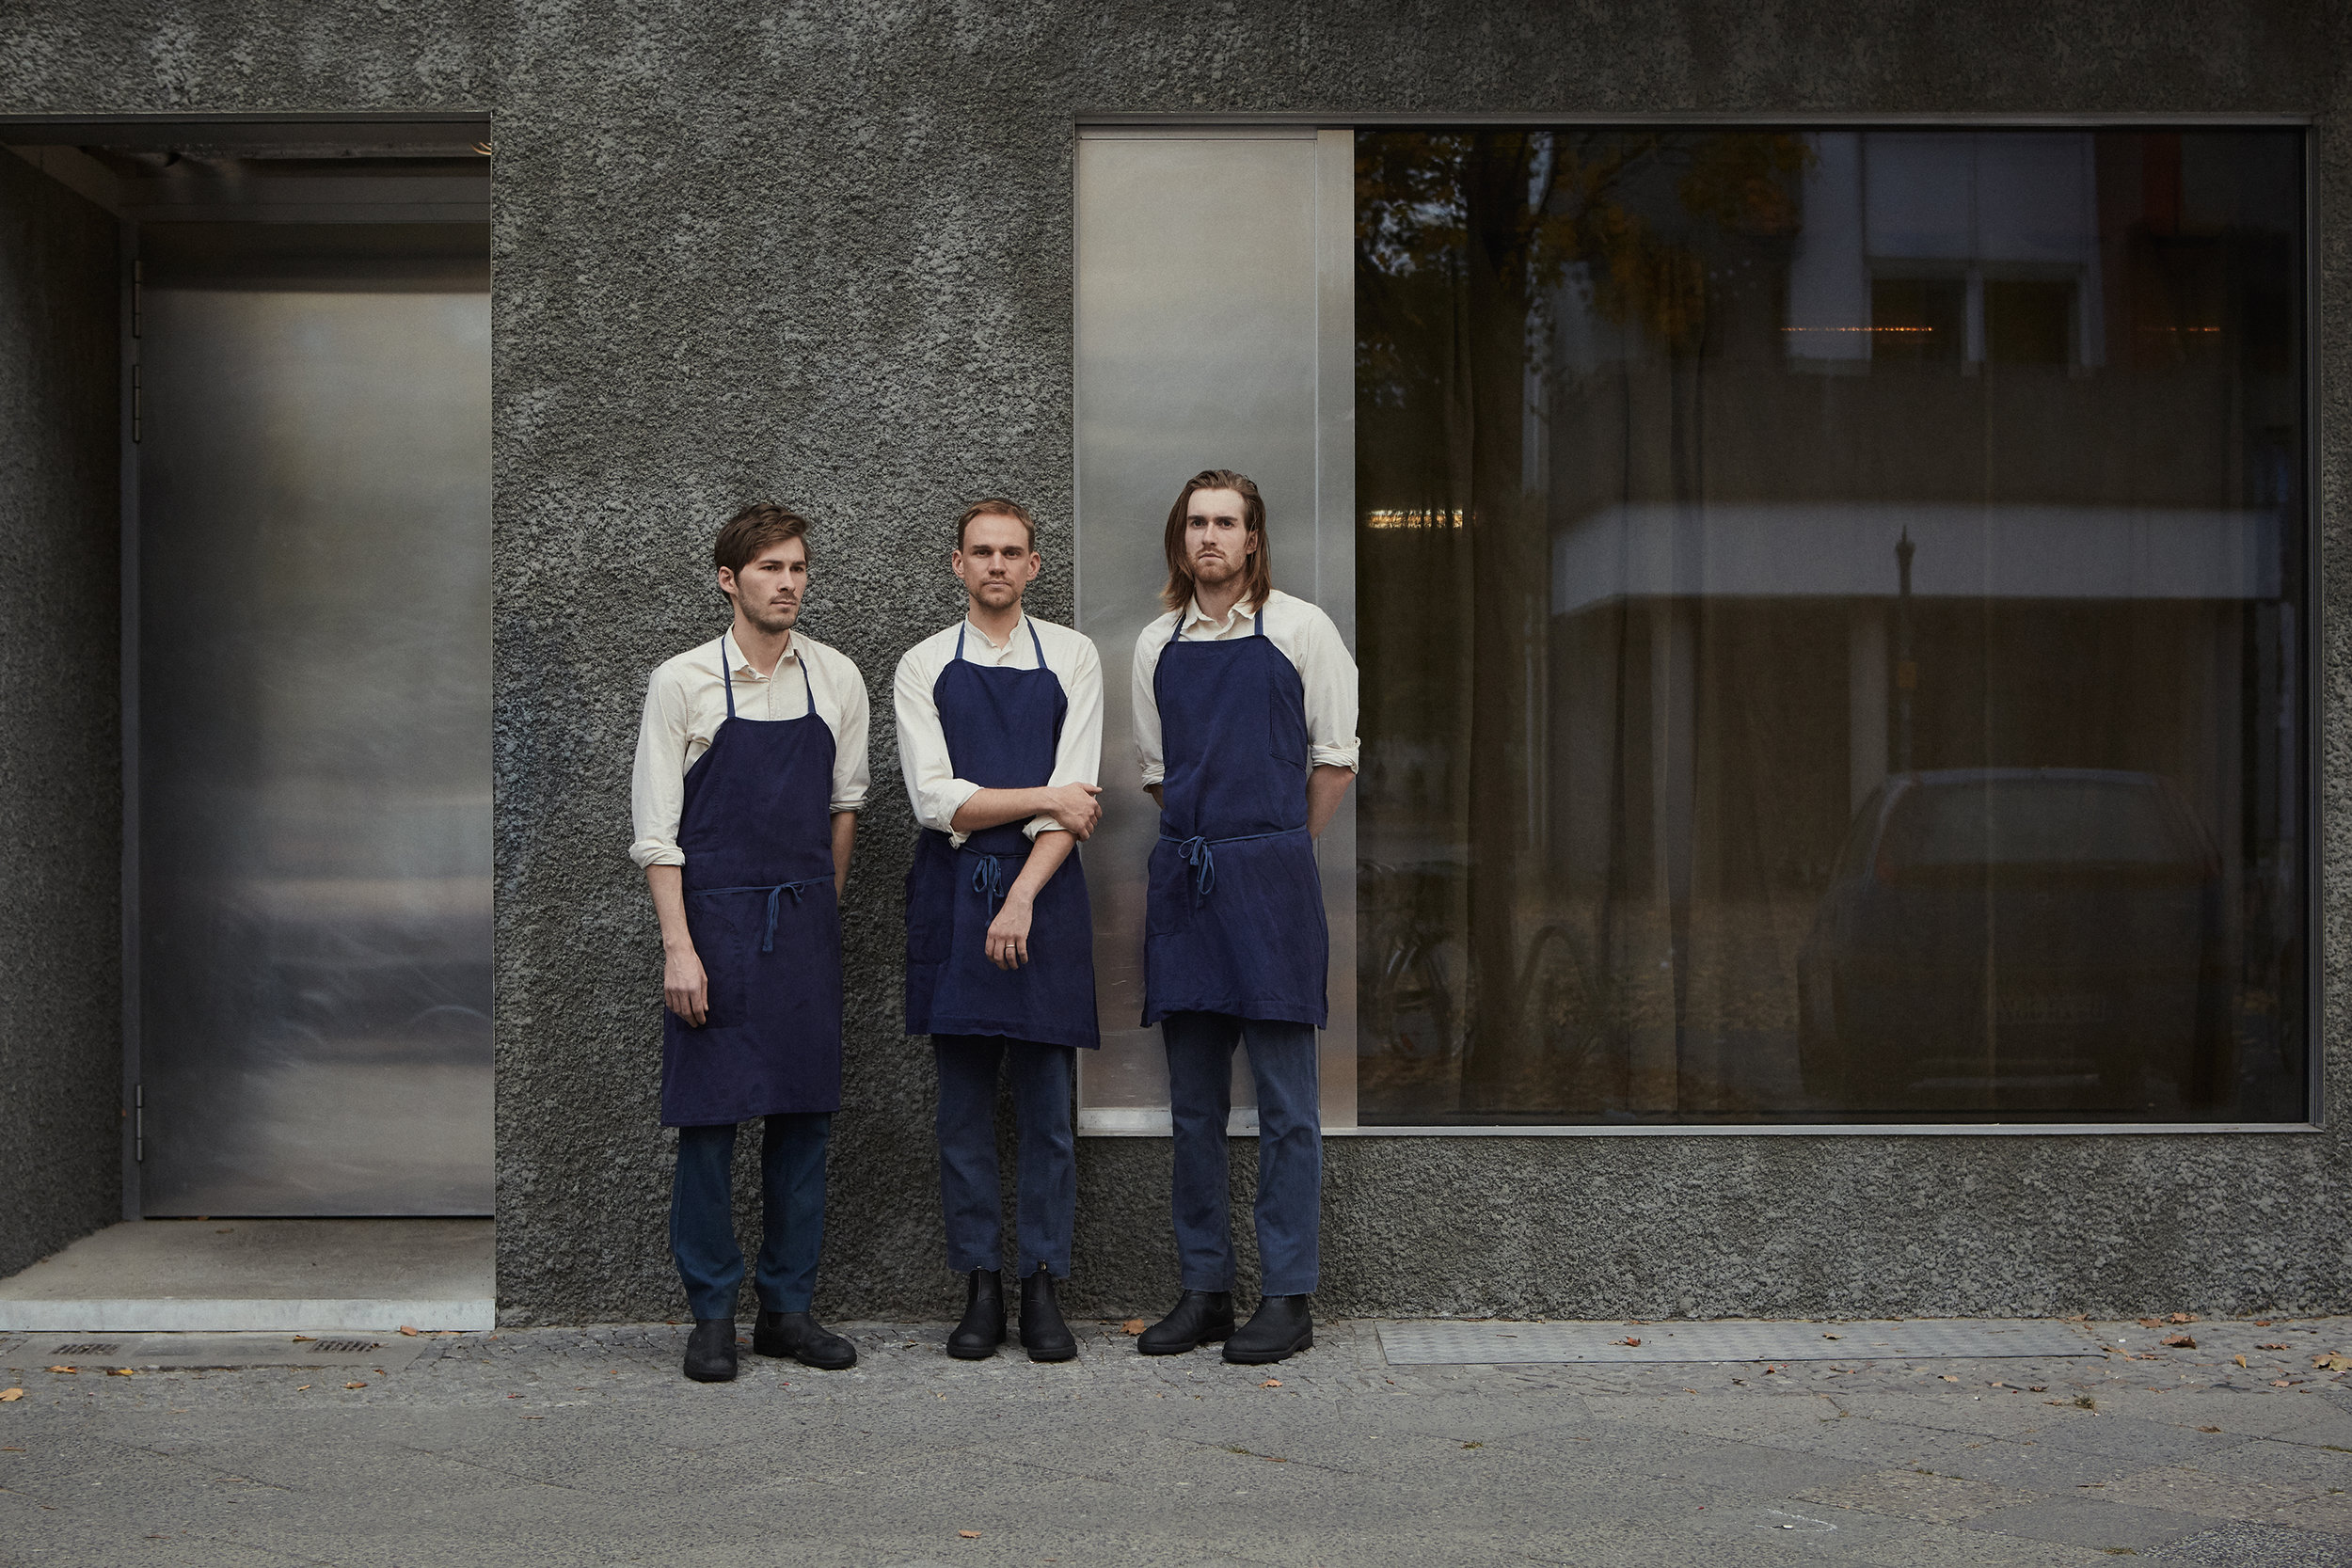 Ernst - We are so excited to announce that Berlin based Restaurant Ernst will cook one of the two dinners at ArktiskMat 2019.In 2017, Canadian chef Dylan Watson-Brawn moved his dining experience from a private apartment setting to a real restaurantThe restaurant is called Ernst, and is one of the most exciting new restaurants in Europe. A counter-dining experience that seats only 12 people every night and serves between 35 and 40 small bites. The restaurant is extremely produce-driven and chef Dylan Watson-Brawn aim to serve only the freshest, most high-quality ingredients that they source from select farmers in the region. The restaurant was awarded its first Michelin-star in 2019.